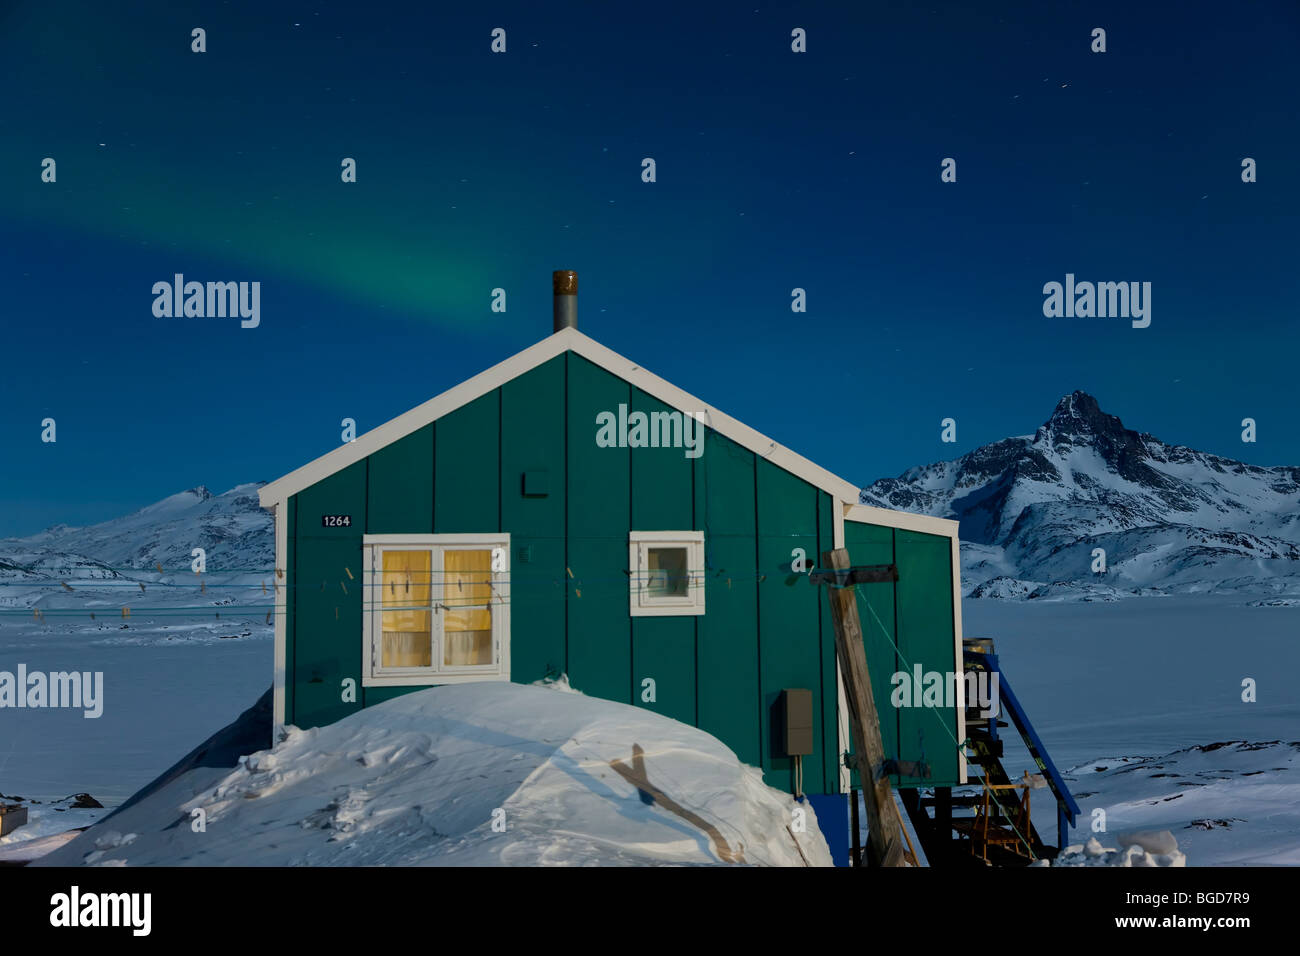 Aurora Borealis or Northern Polar Lights, Tasiilaq, E. Greenland - Stock Image